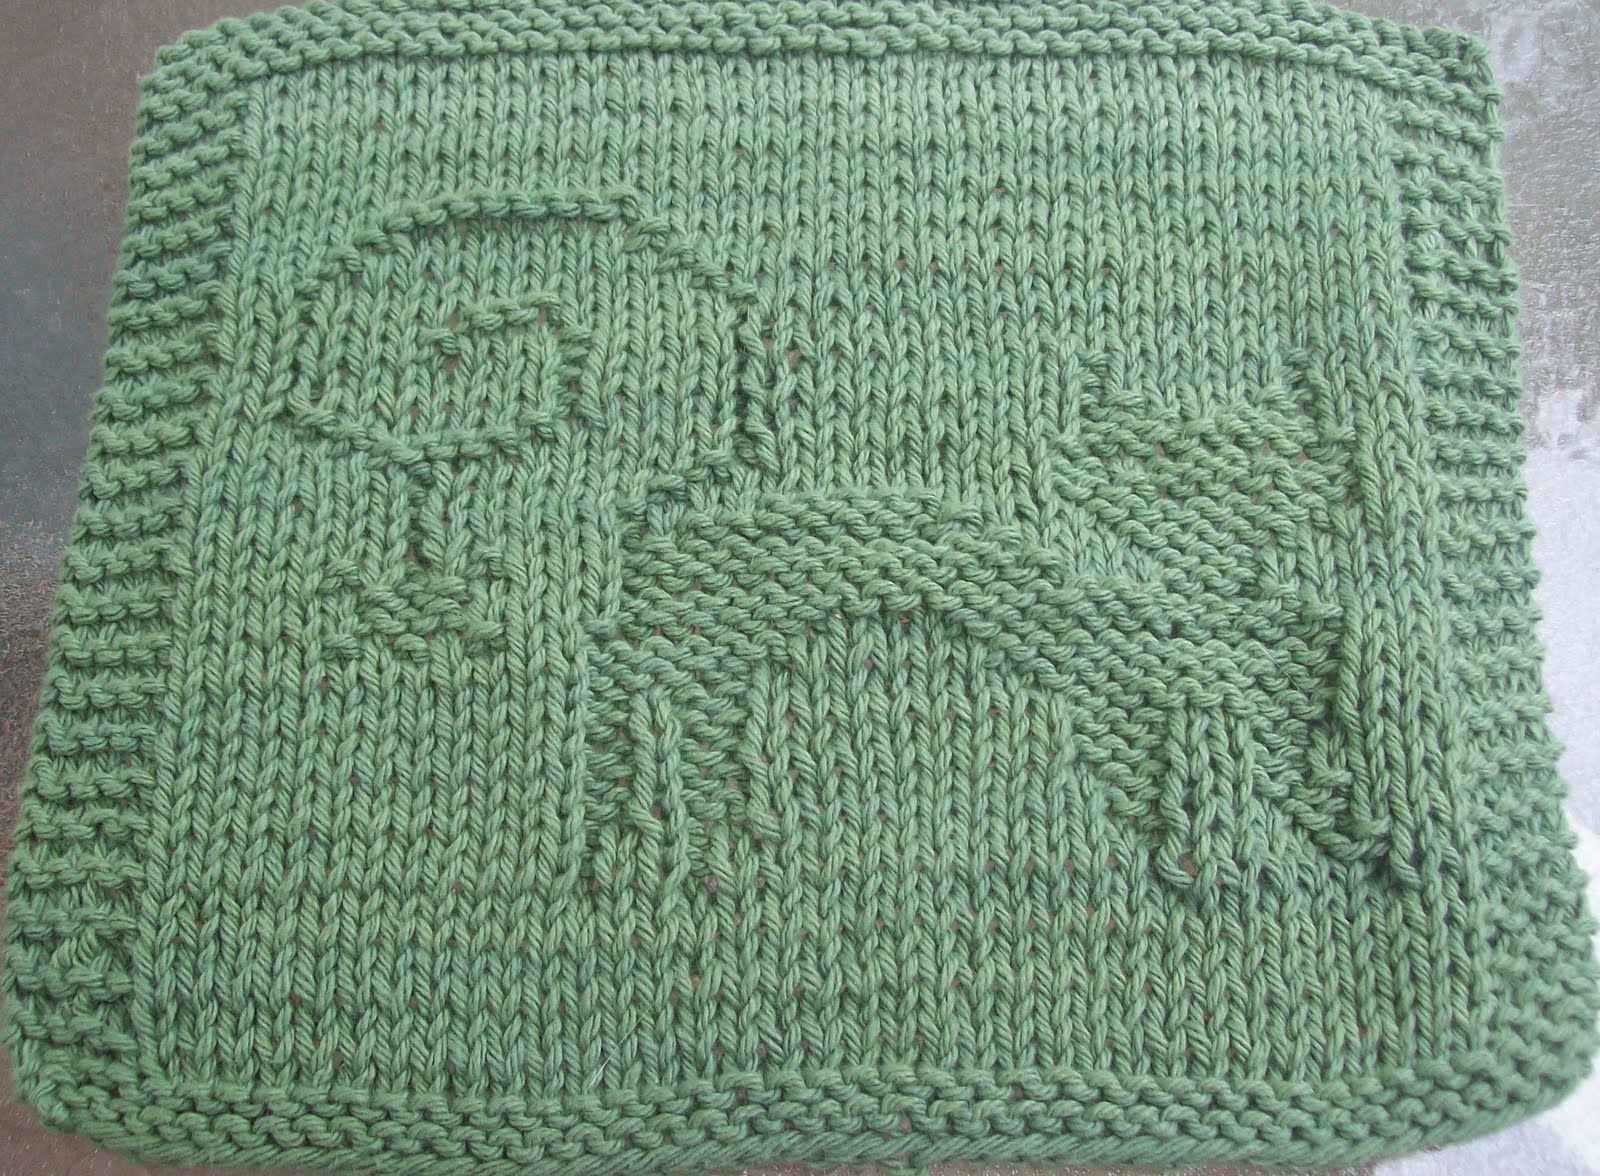 Knitted Dalek Pattern : DigKnitty Designs: Cat With Spider Knit Dishcloth Pattern